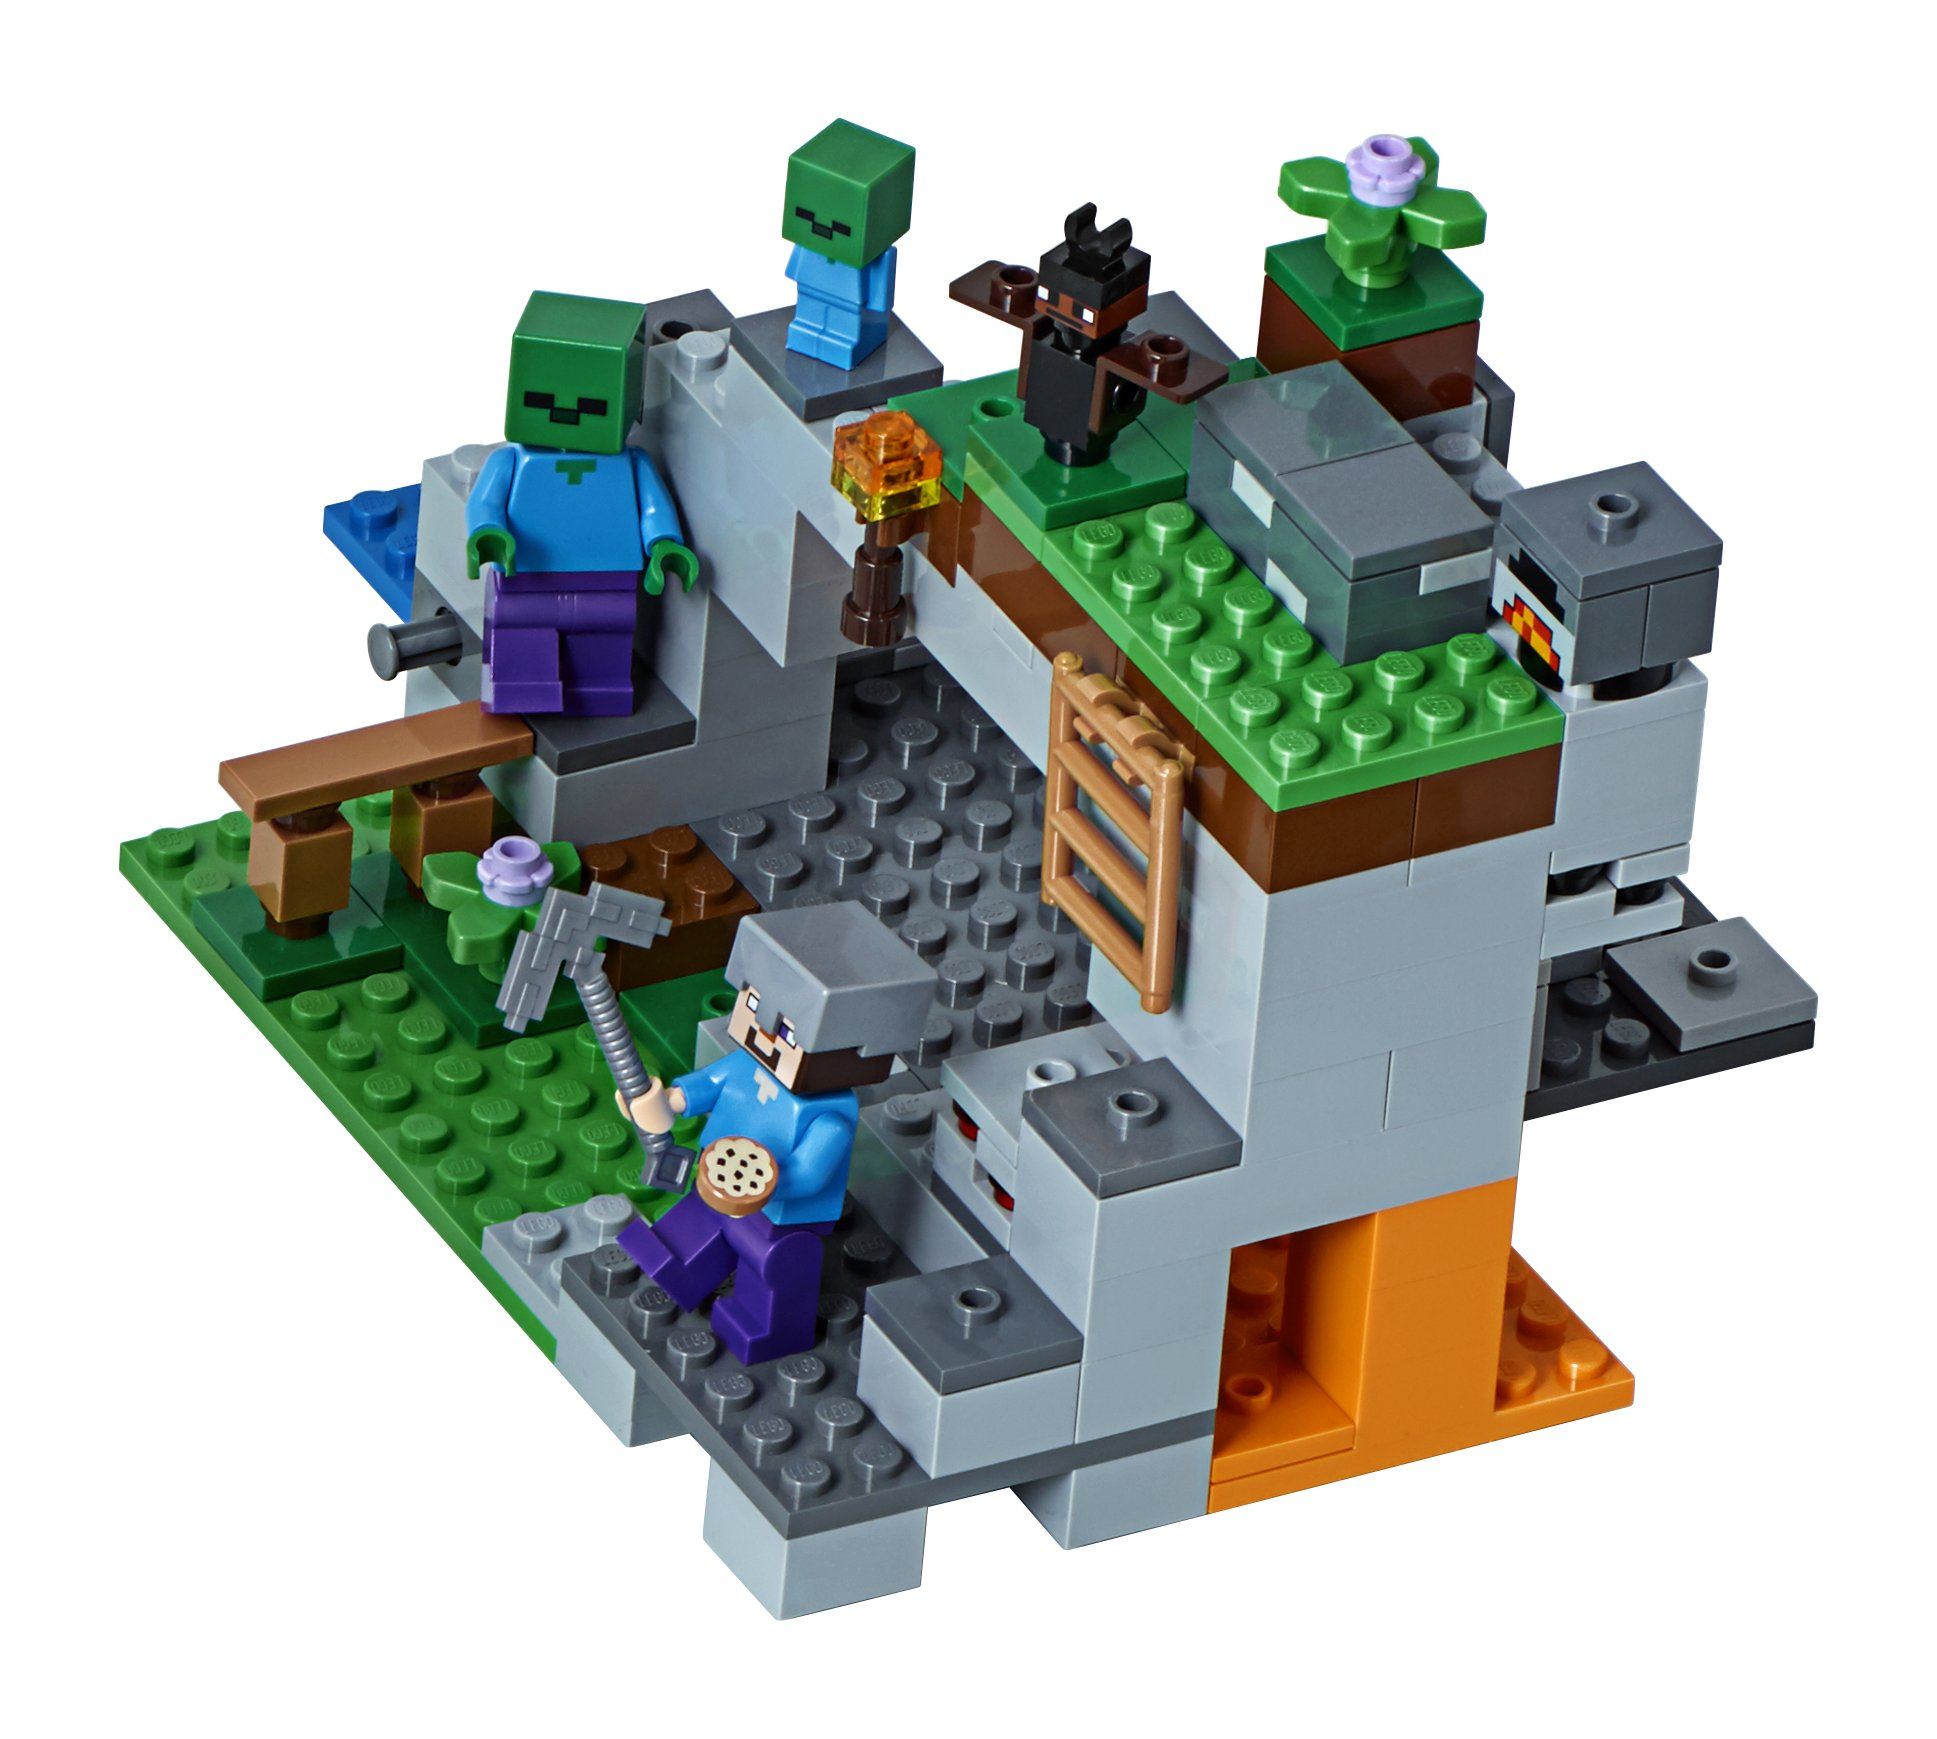 LEGO Minecraft The Zombie Cave 21141 Building Kit (241 Piece) by LEGO (Image #2)